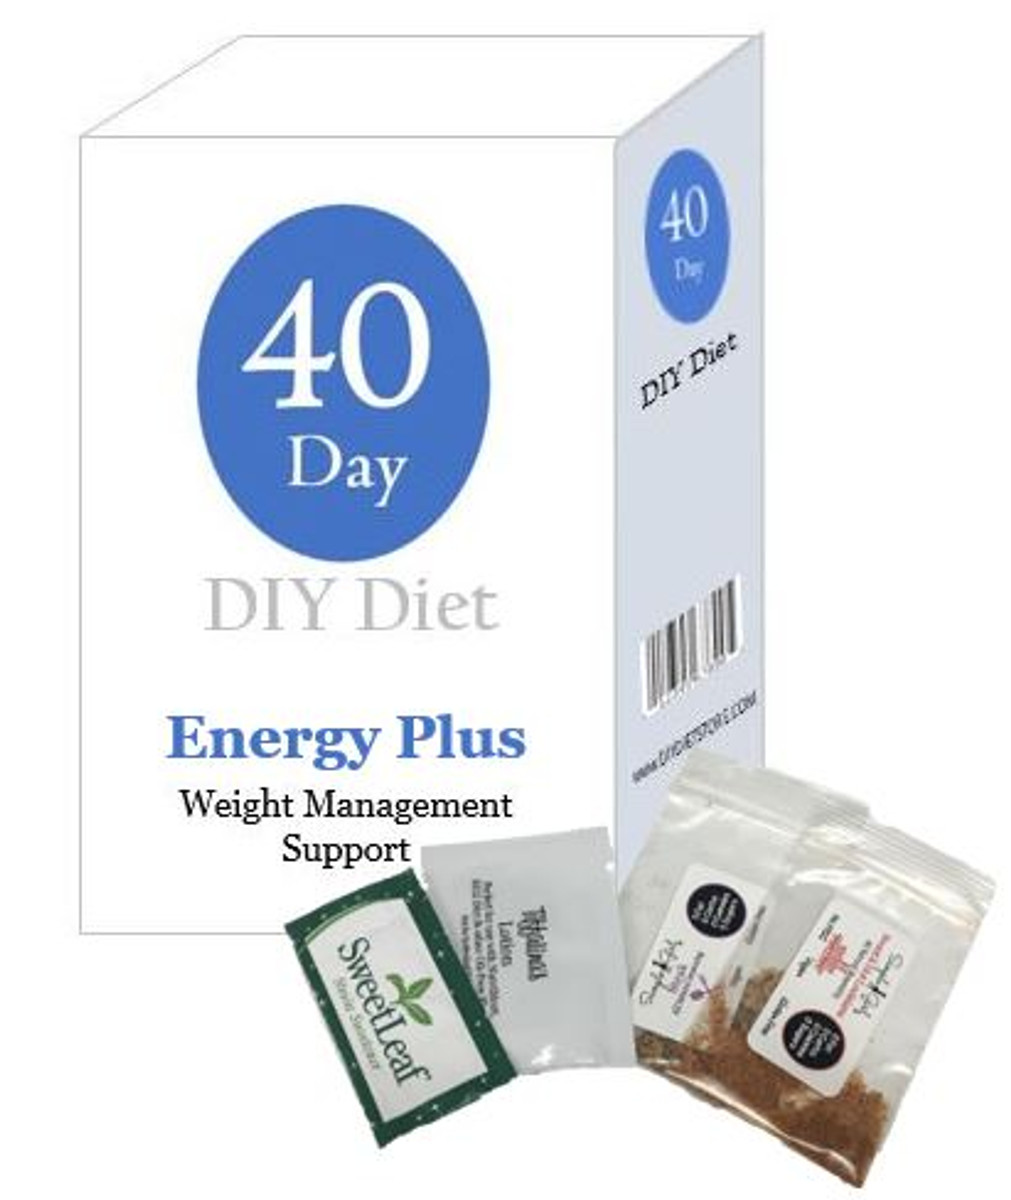 40 Day DIY Diet Weight Loss Package Plus Energy